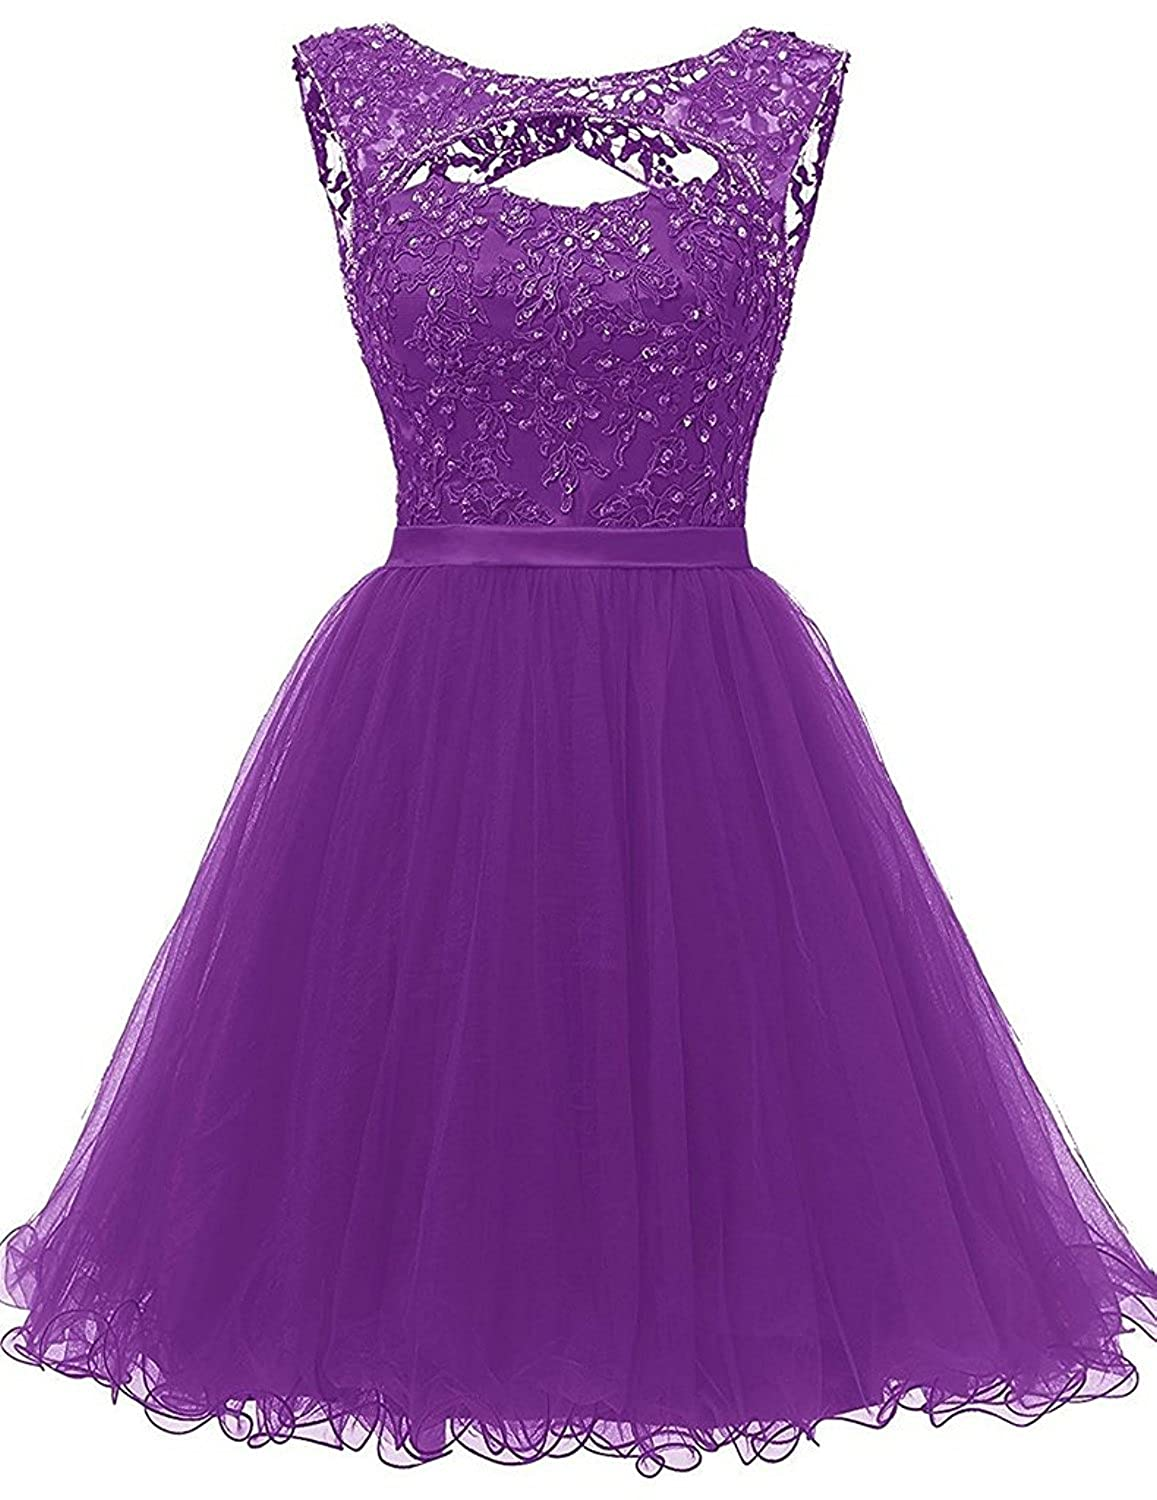 Purple Caissen Women's Short Ball Gown Round Neck Beading Appliques Tulle Cocktail Dresses Open Back with Zipper Dance Dress